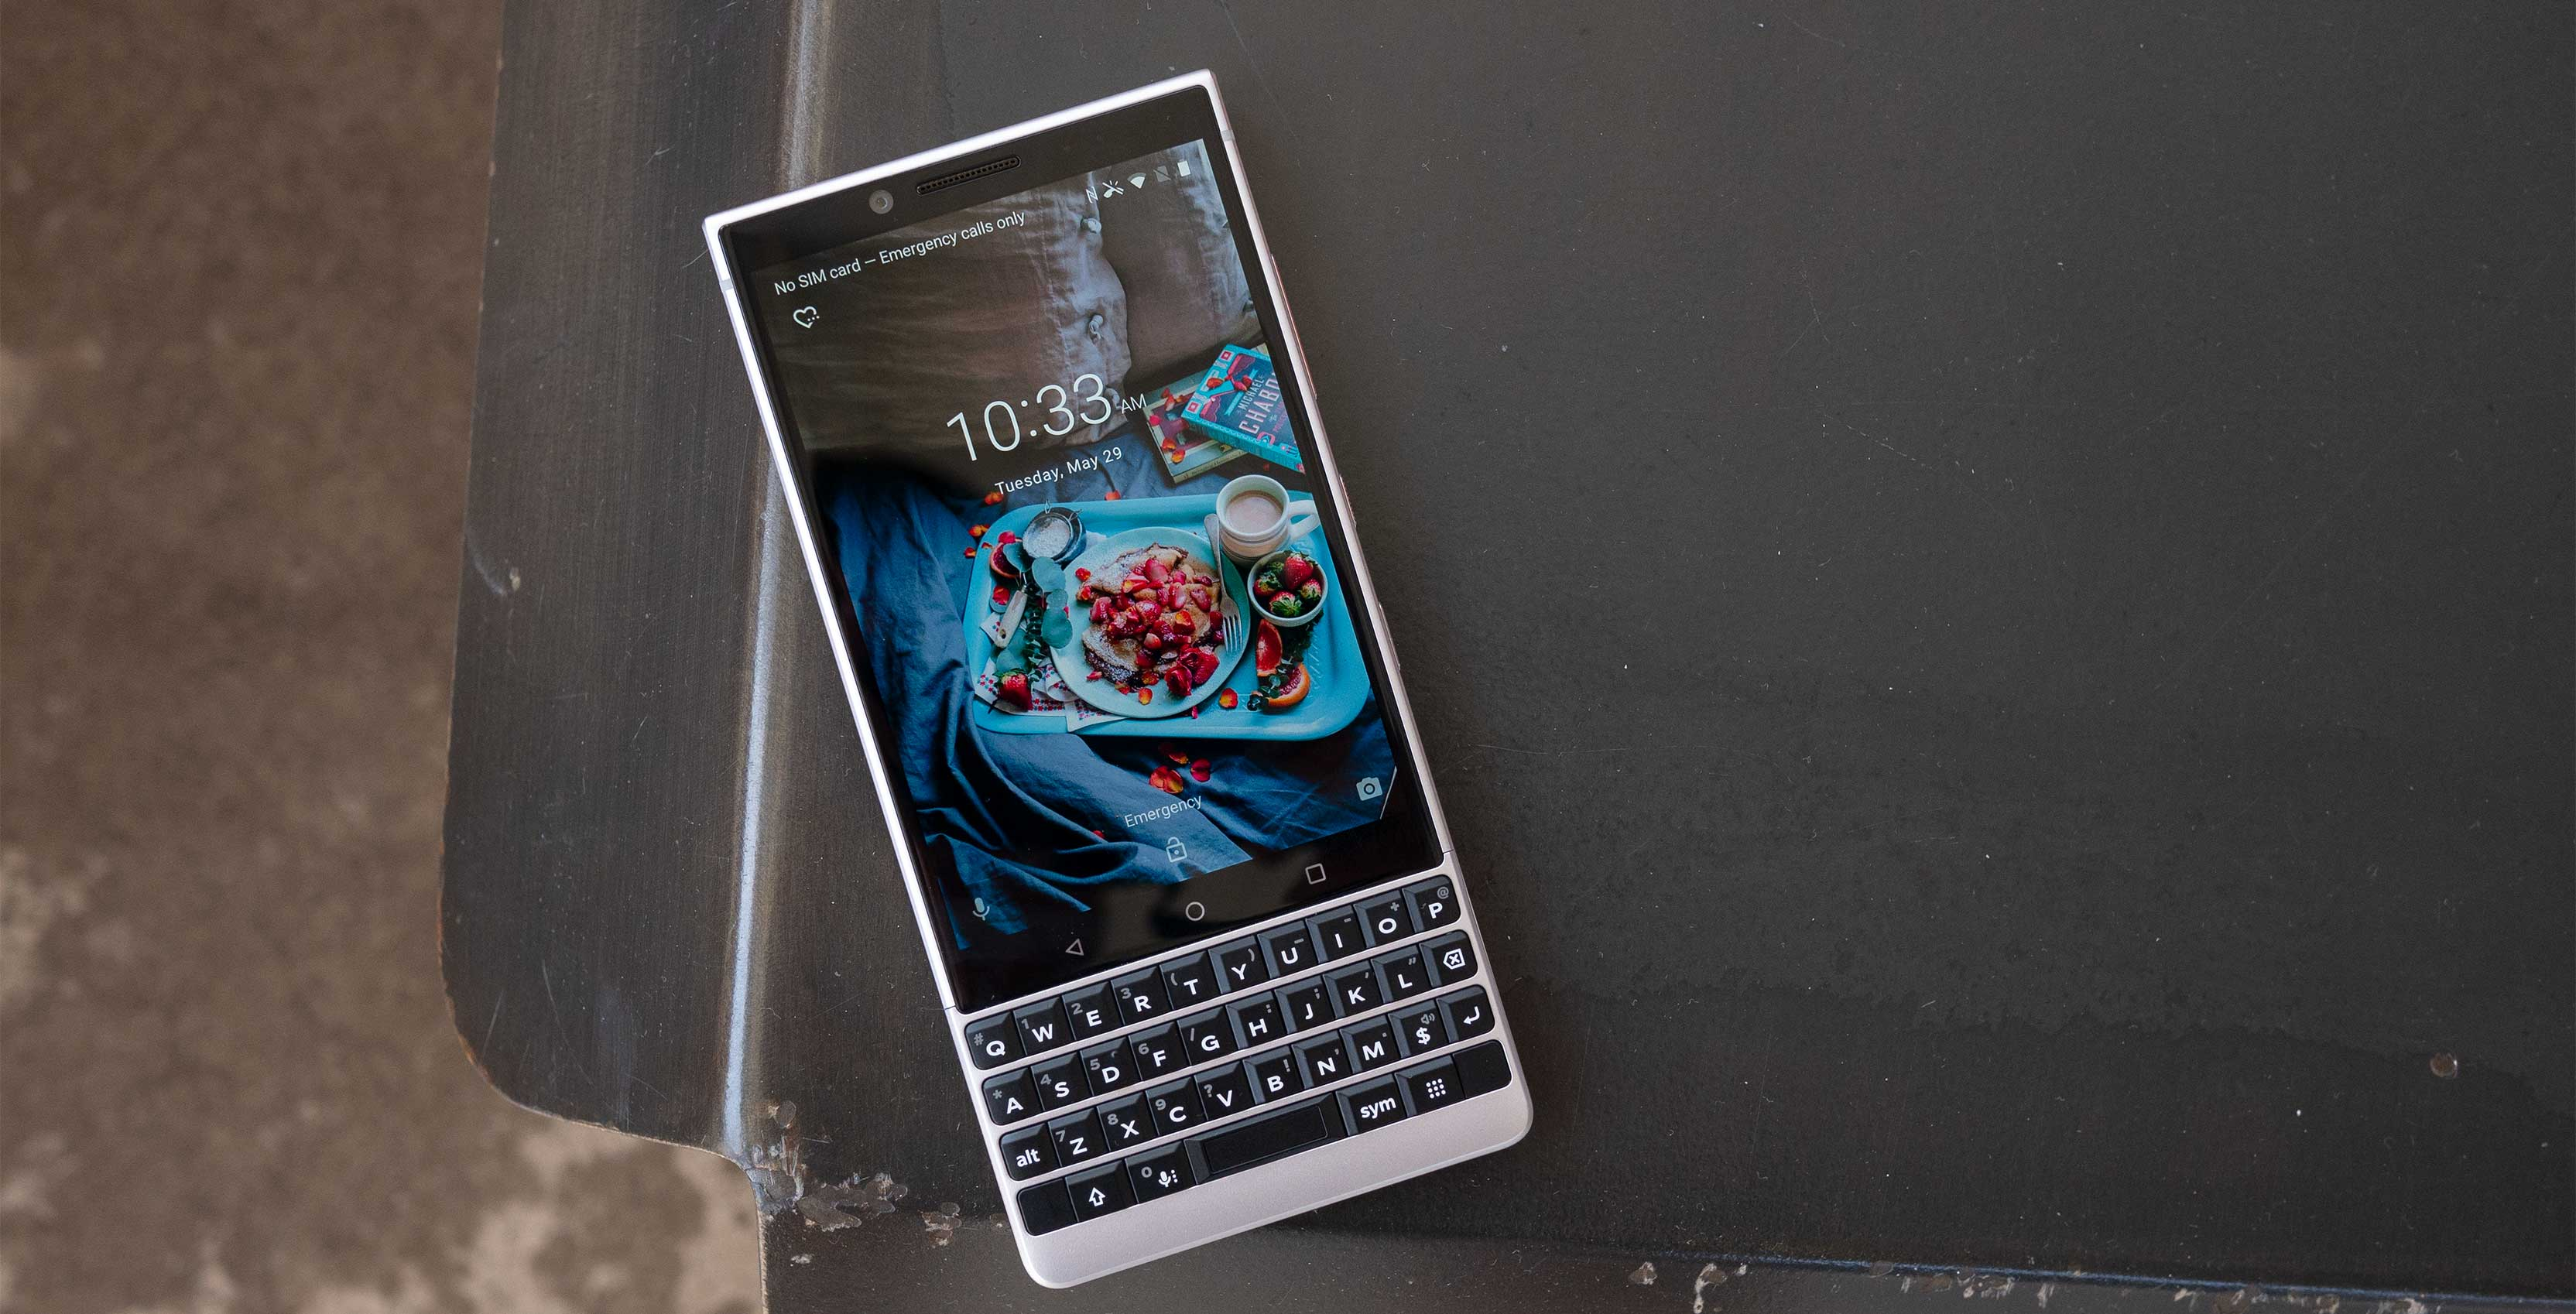 The new BlackBerry KEY2 smartphone